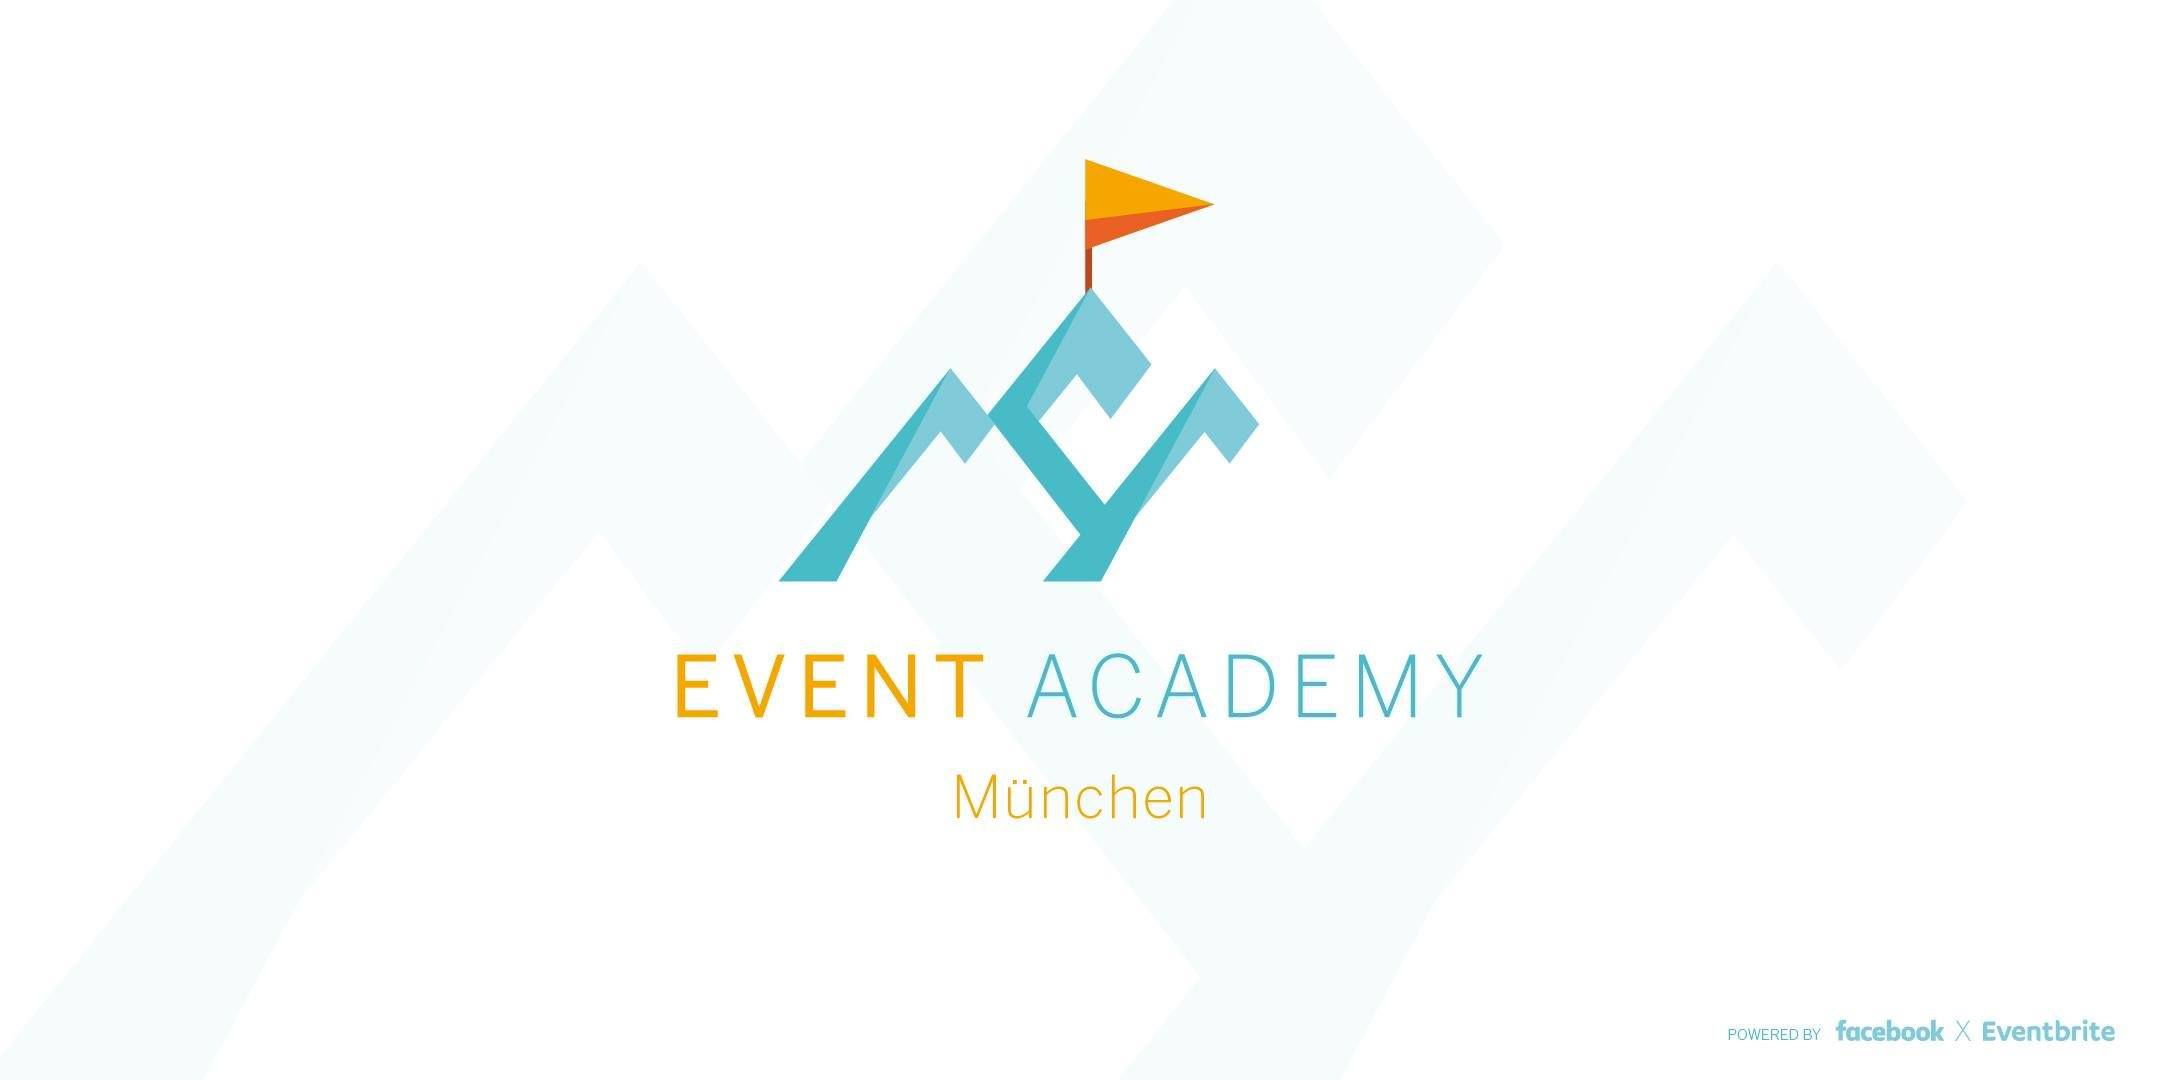 Event Academy MÜNCHEN – powered by Facebook & Eventbrite